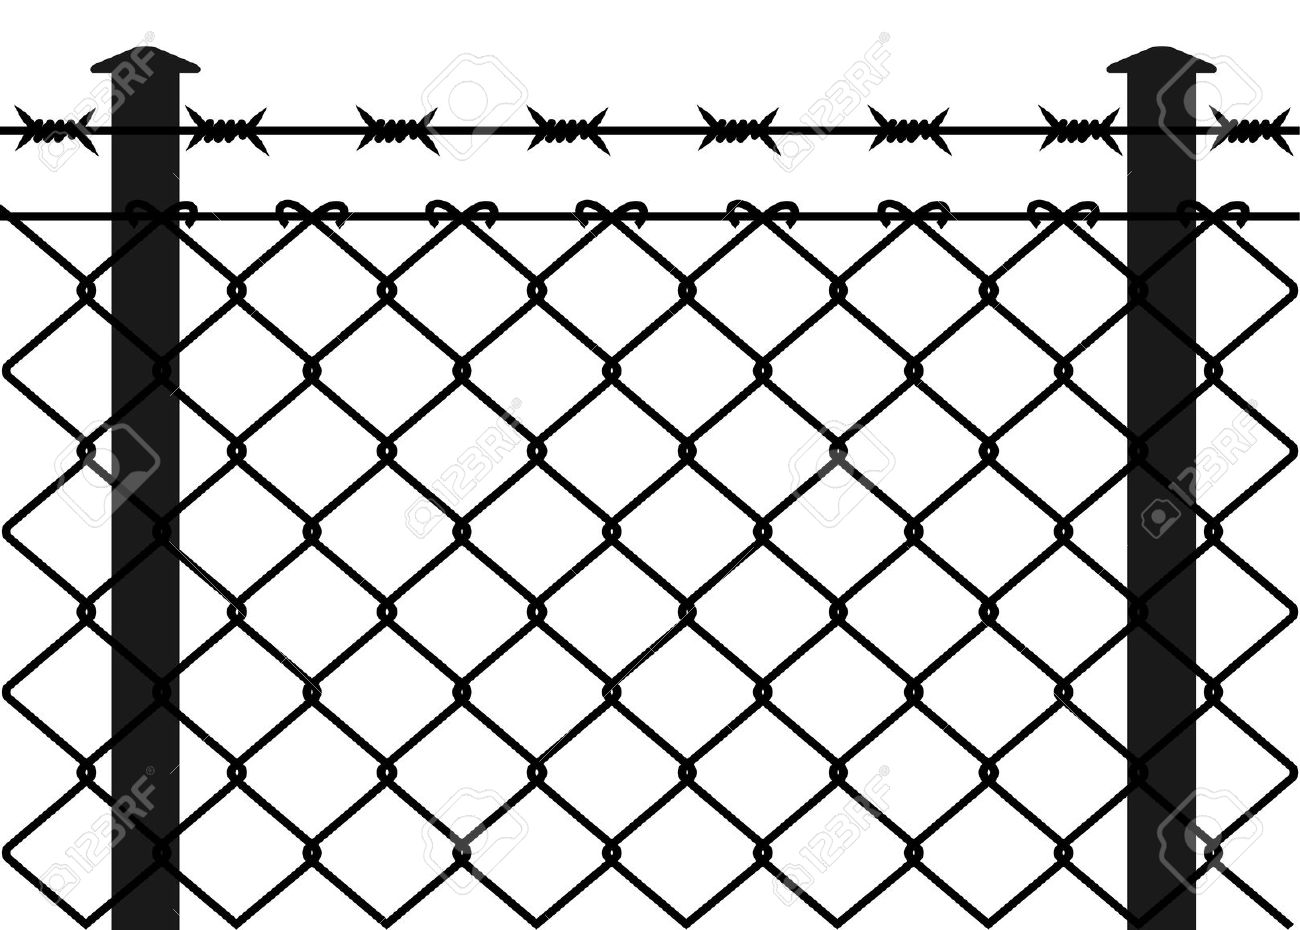 Wire fence clipart.